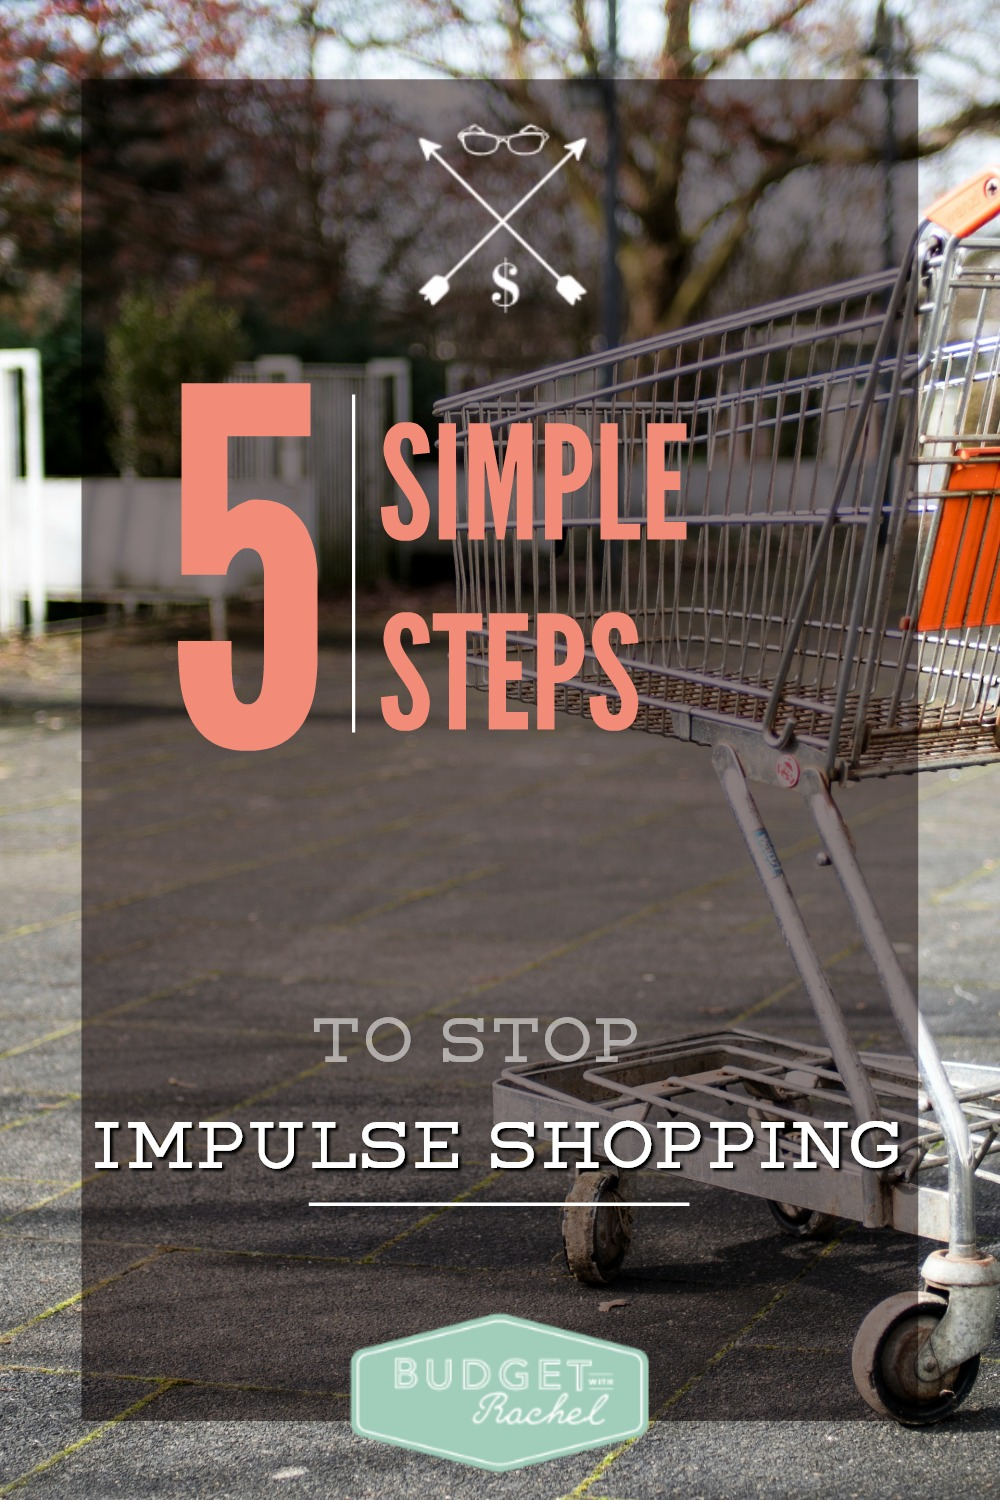 5 Questions To Ask Yourself Before You Hit the Checkout Lane (Self-Control Training For Impulse Shoppers). These steps are amazing! When I went shopping and went through these steps, I ended up not buying like half the stuff in my cart. All the steps are great, but #3 really made me think before making a purchase. I'm totally an impulse shopper and this has really helped! Love the picture download to keep with me while shopping!